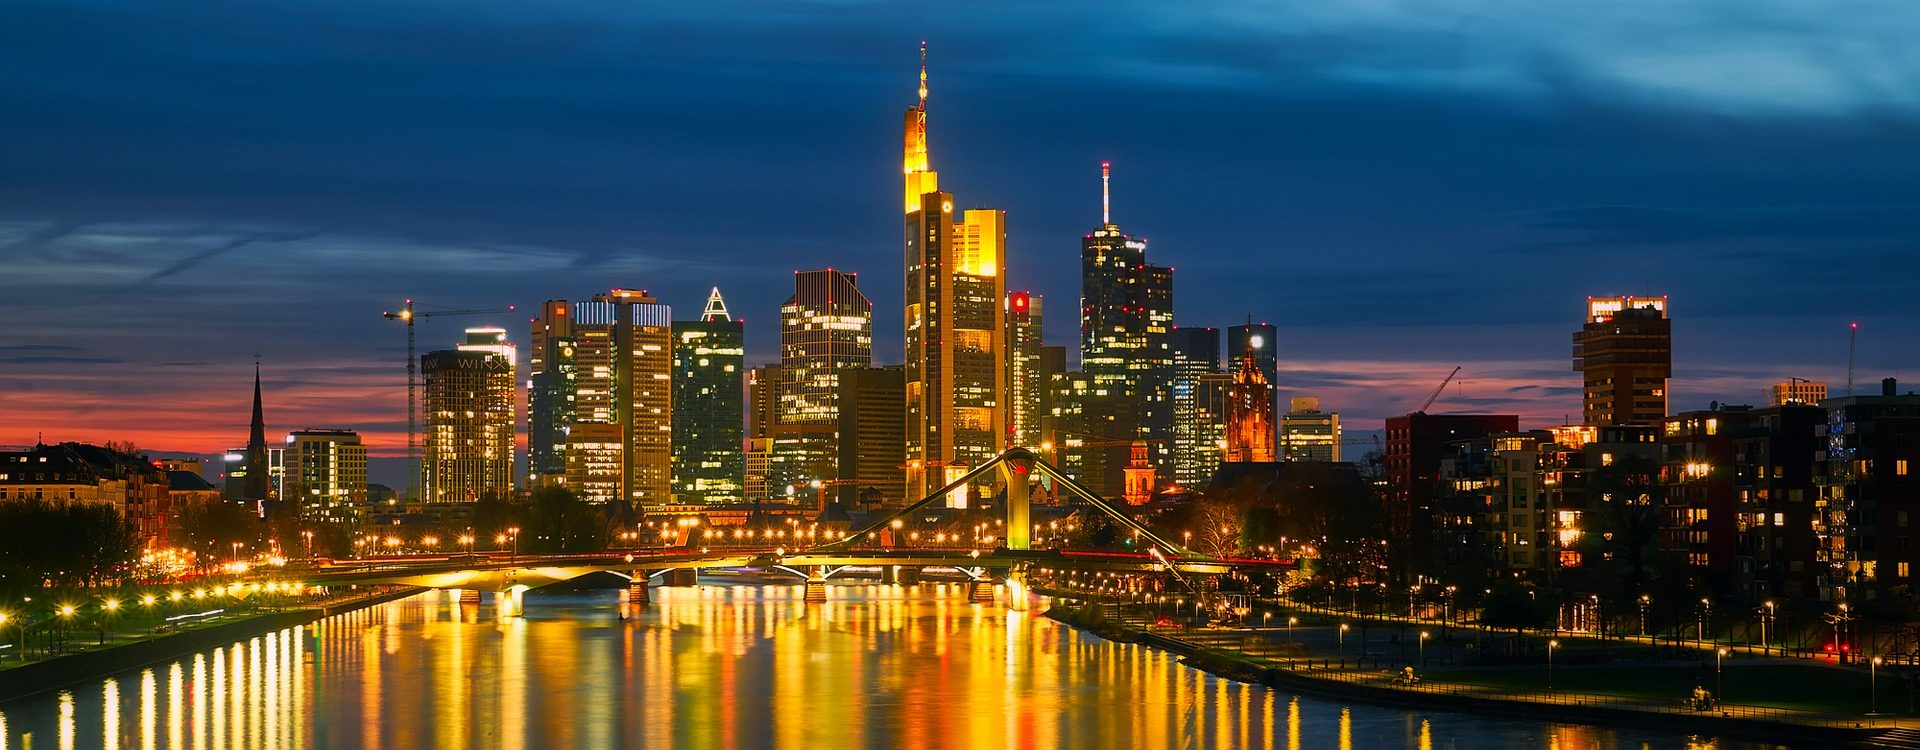 Frankfurt am Main: apartment houses in a good location